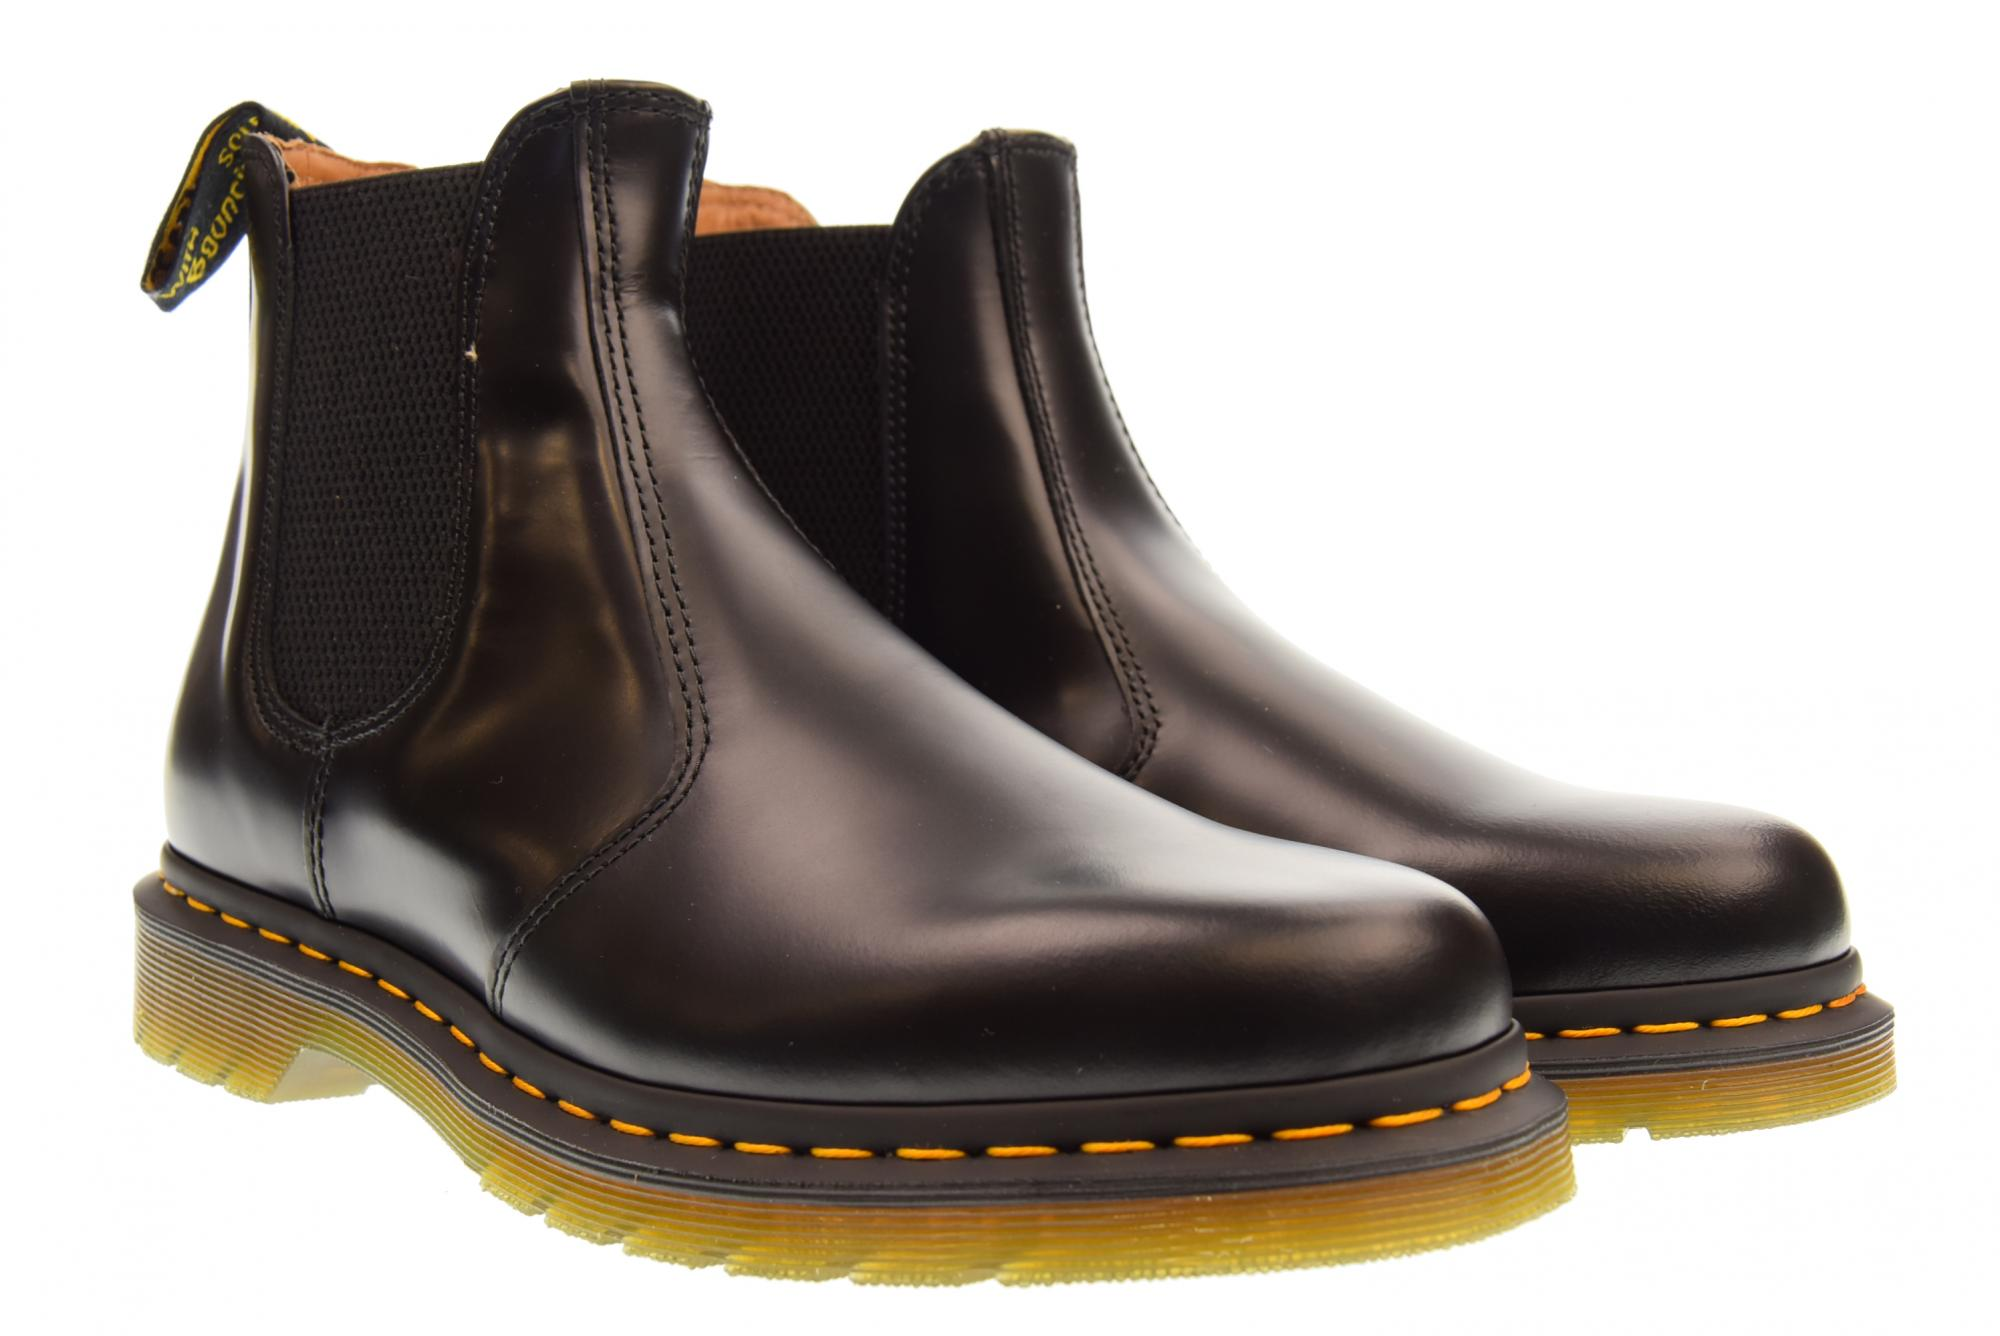 NEW Mens Dr Martens 2976 Cherry Red Bush Leather Chelsea